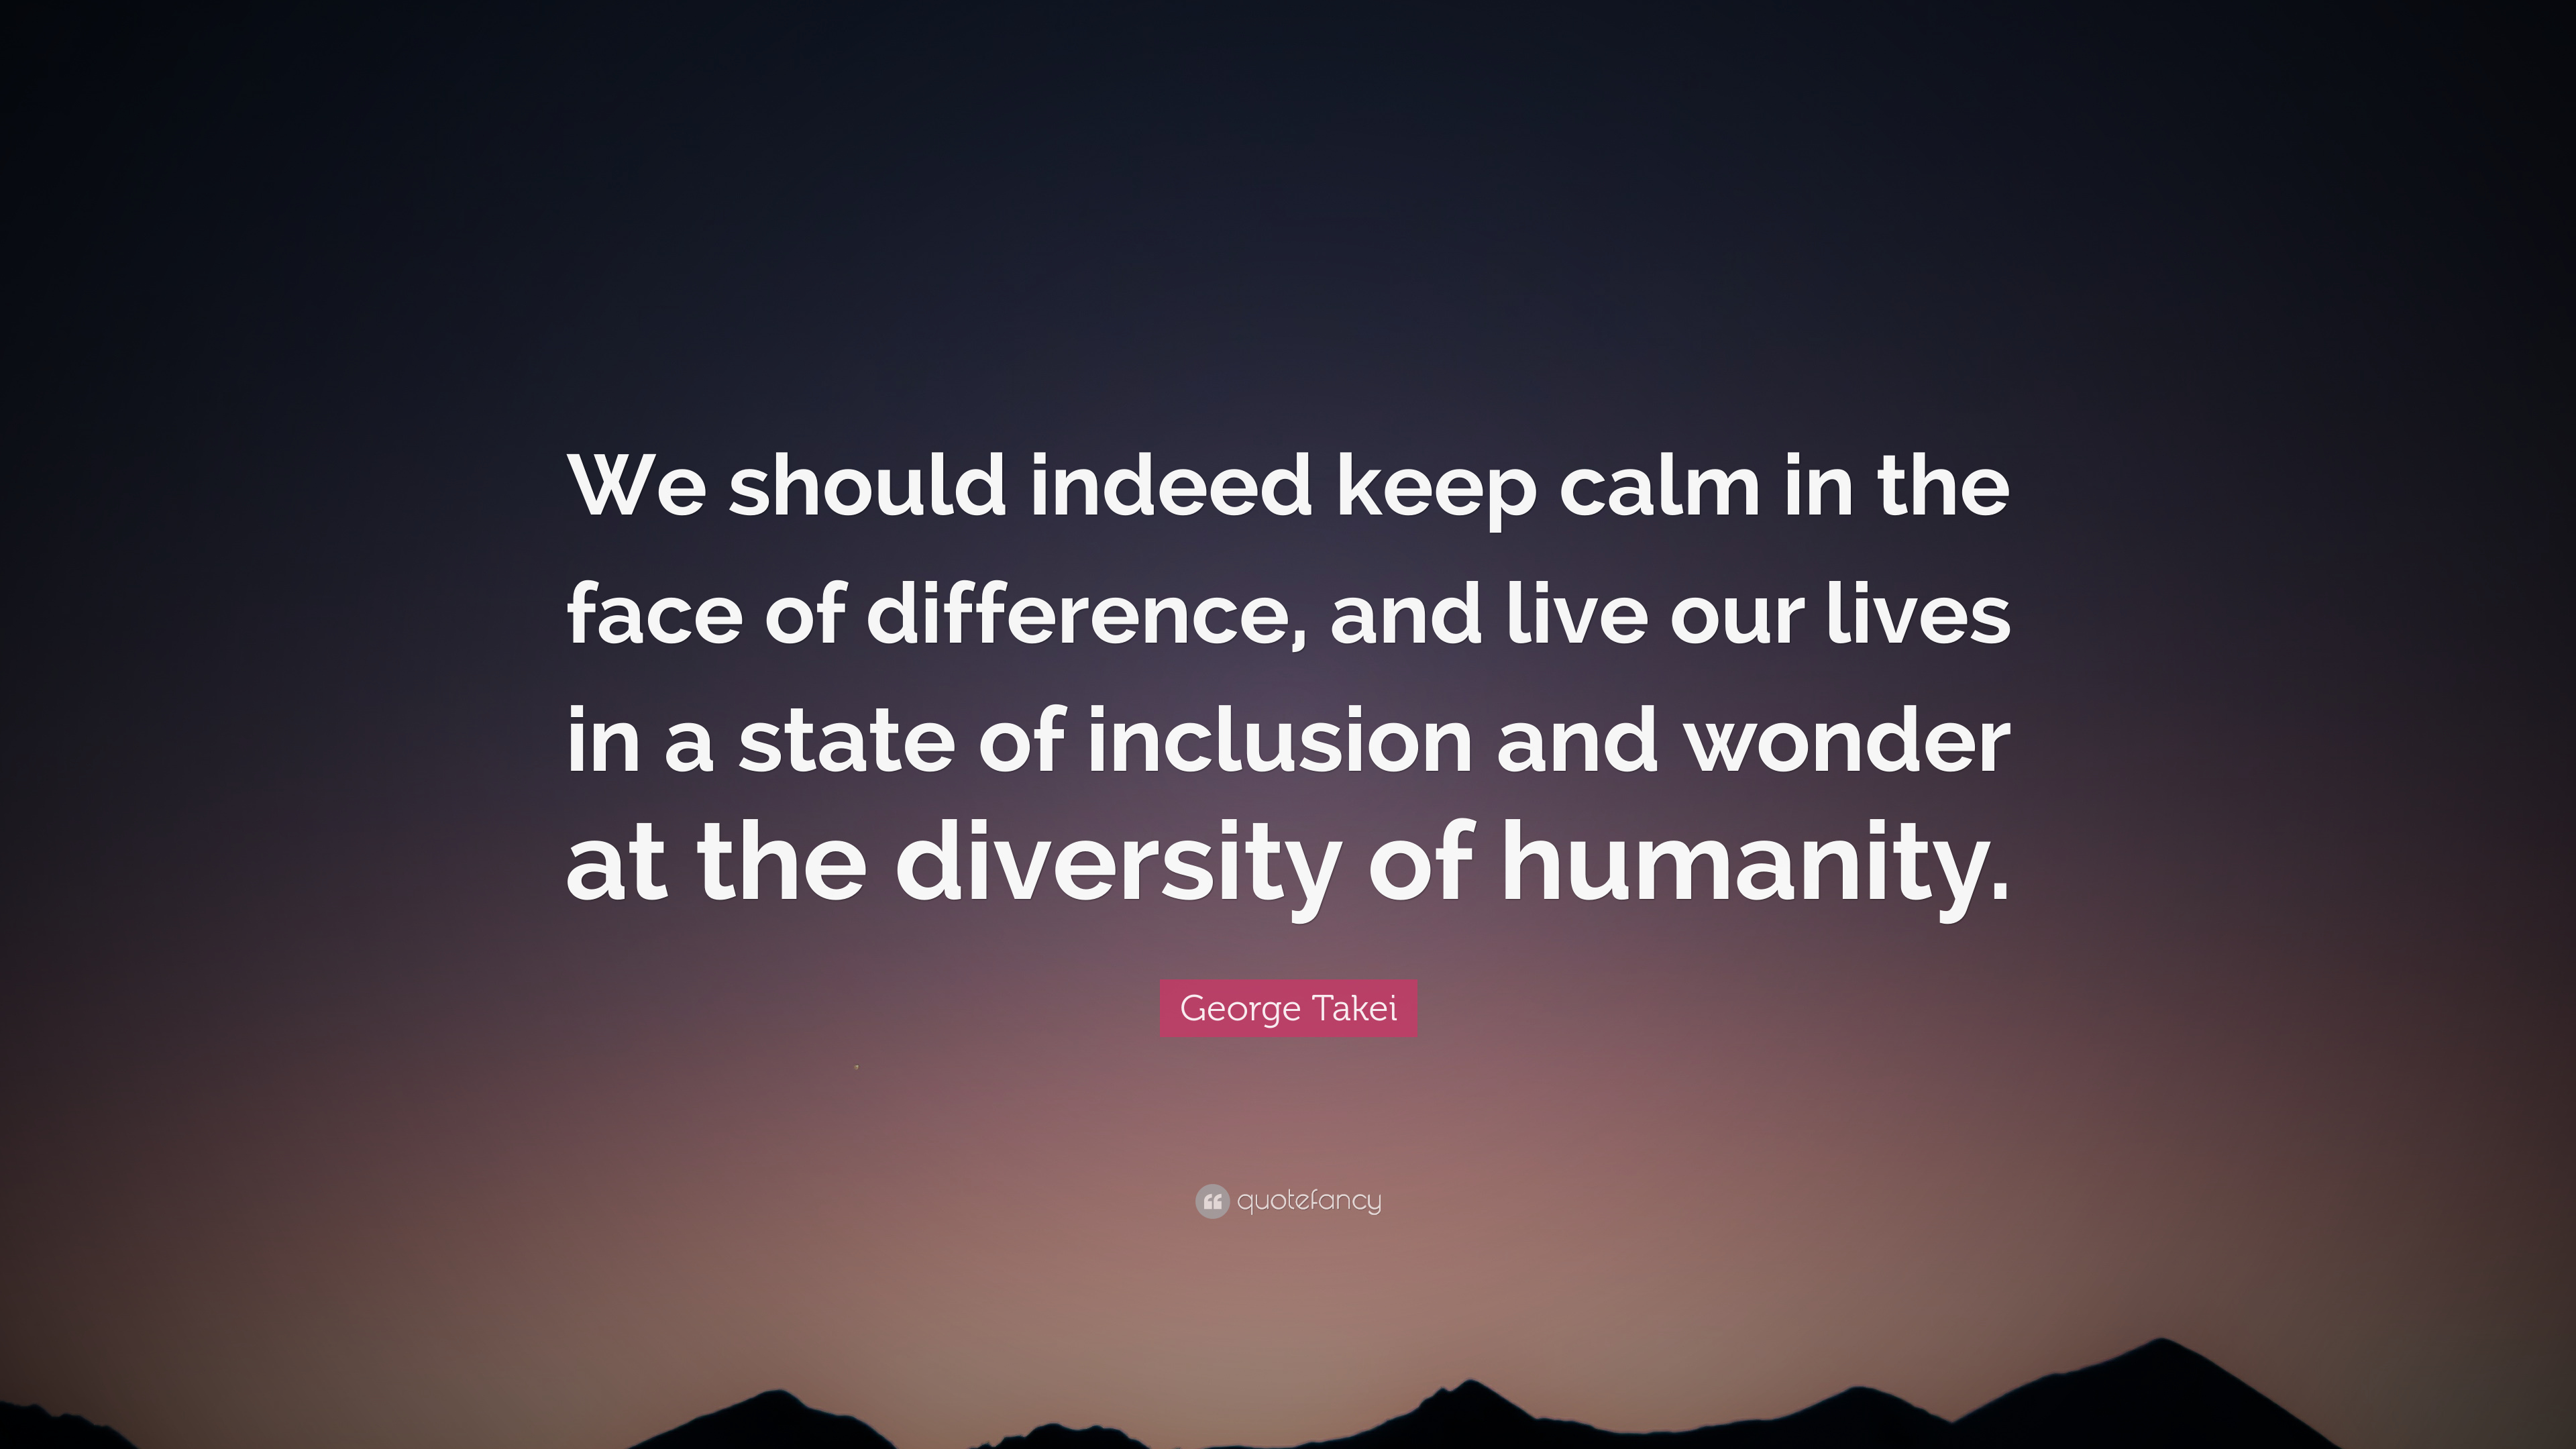 Diversity And Inclusion Quotes George Takei Quotes 37 Wallpapers  Quotefancy